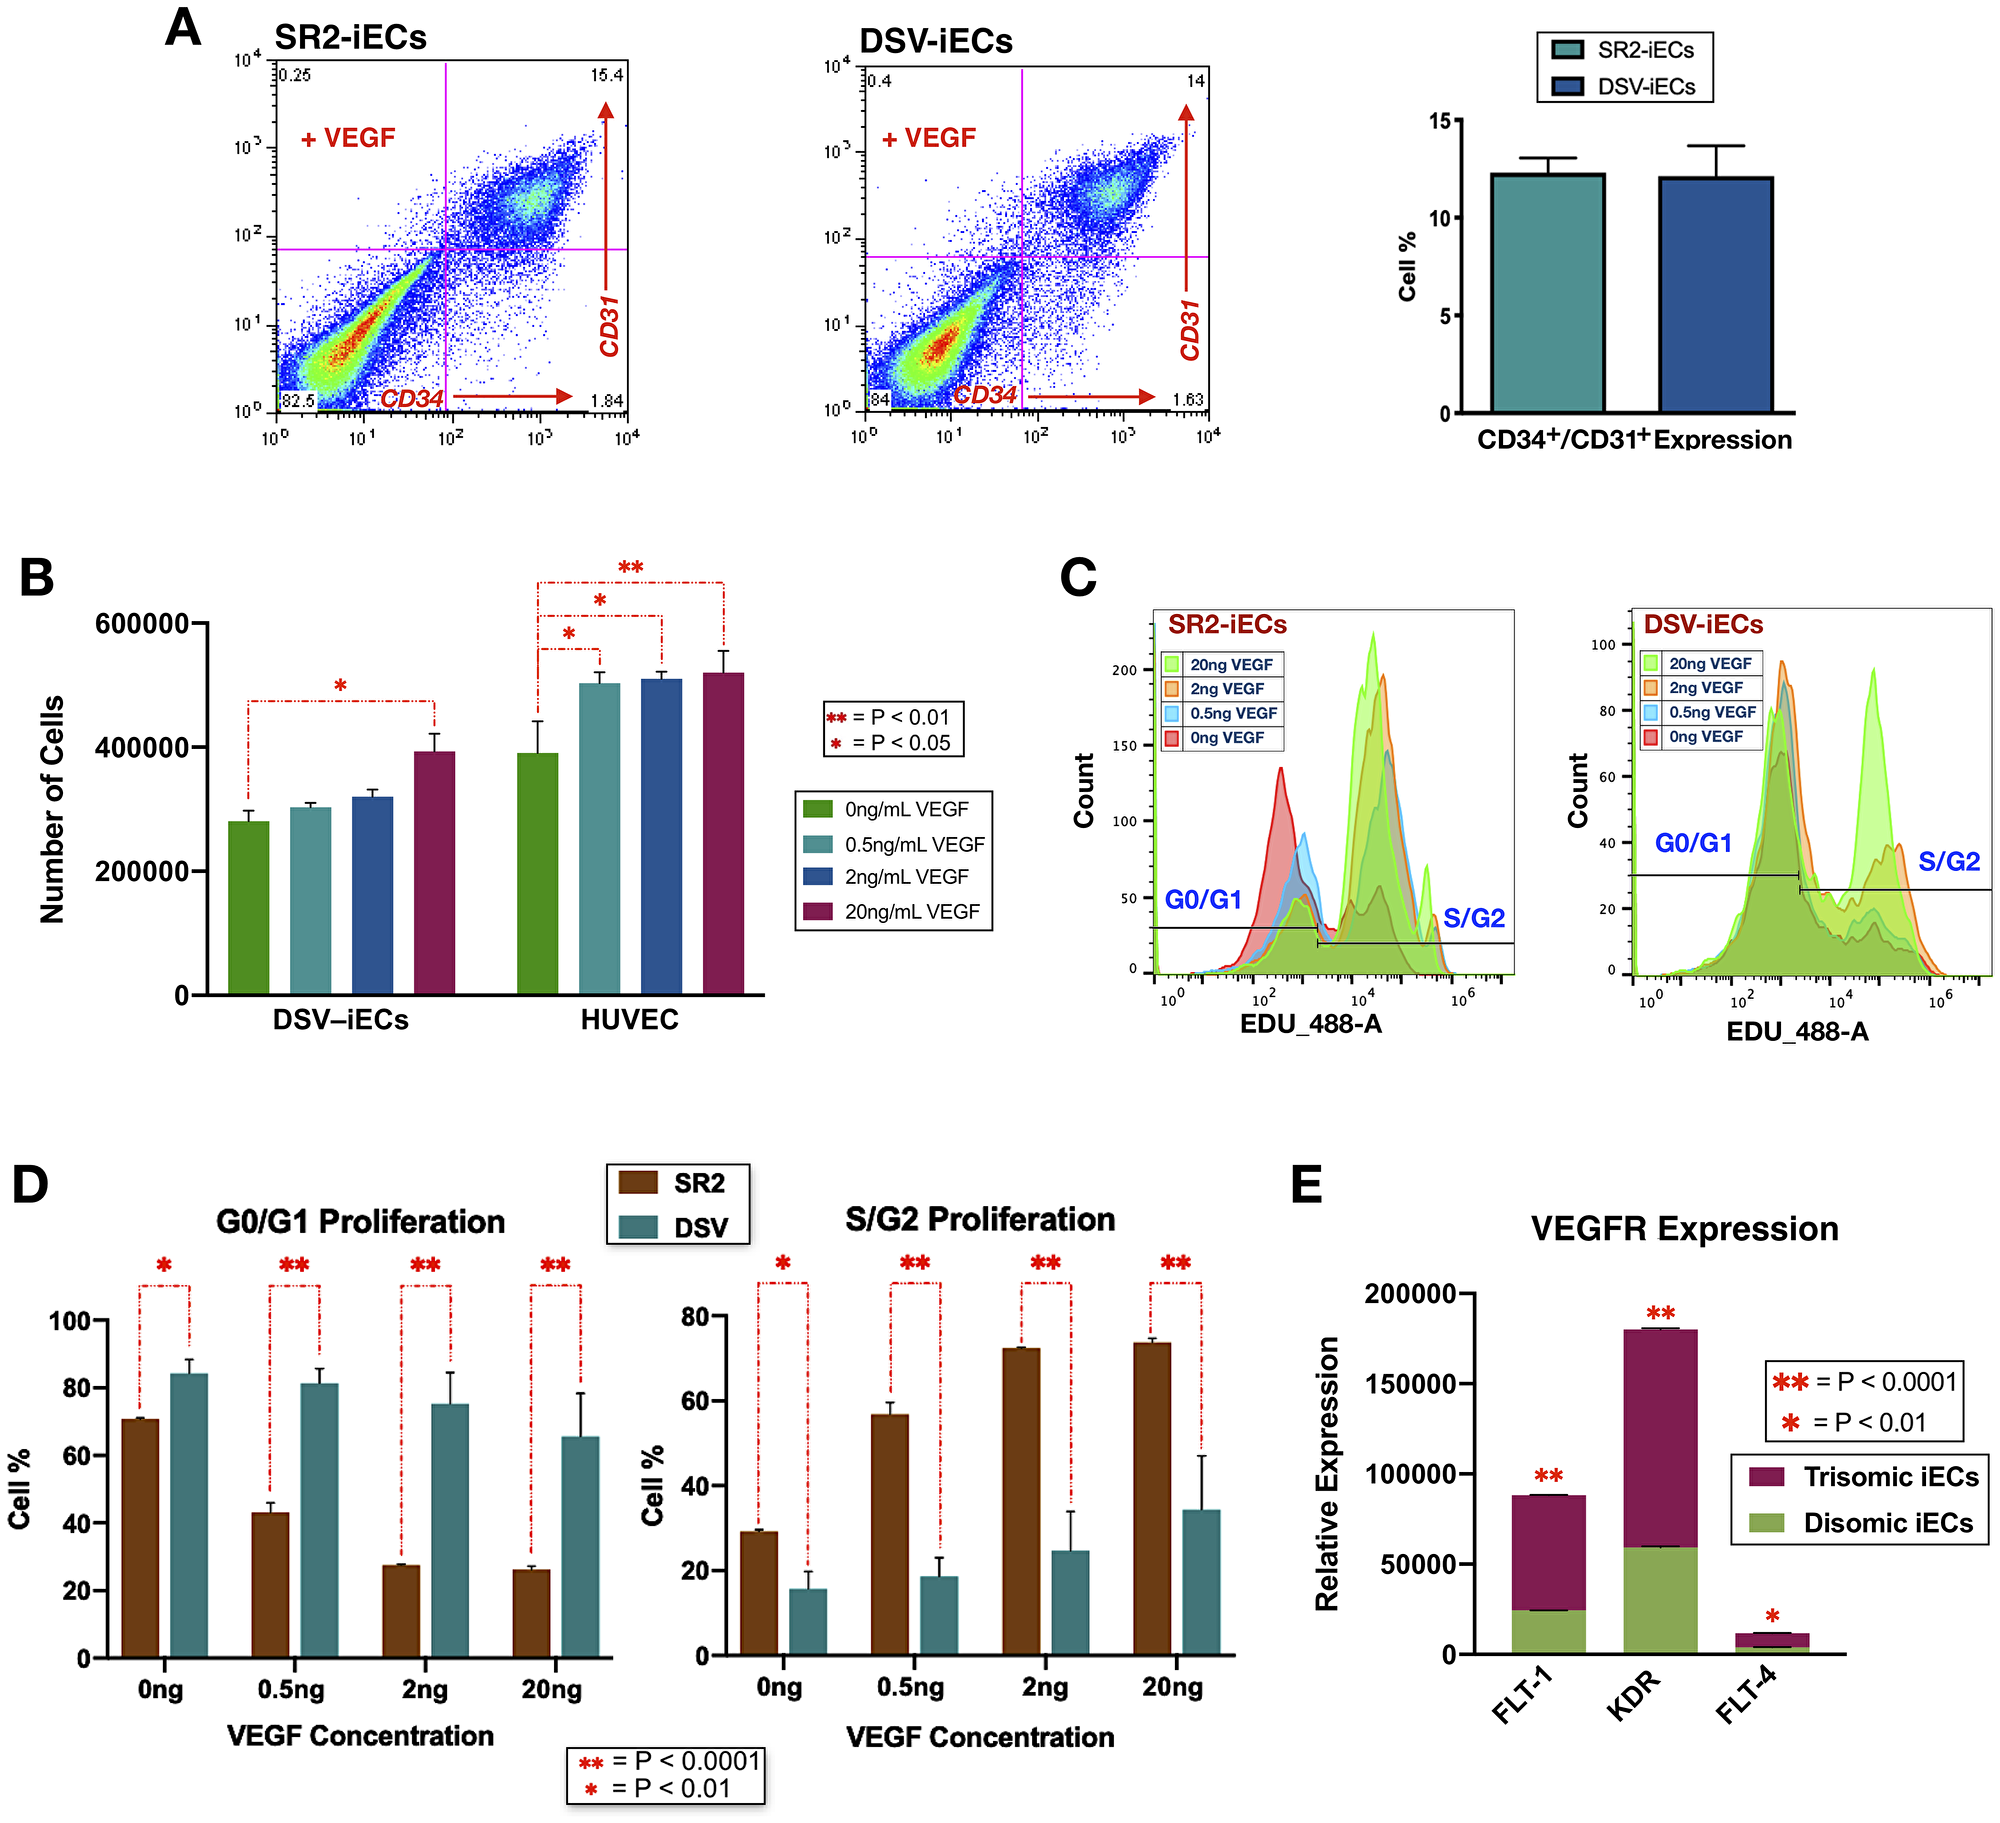 Endothelial differentiation efficiency, VEGF response sensitivity, and proliferative potential of disomic and trisomic iECs.